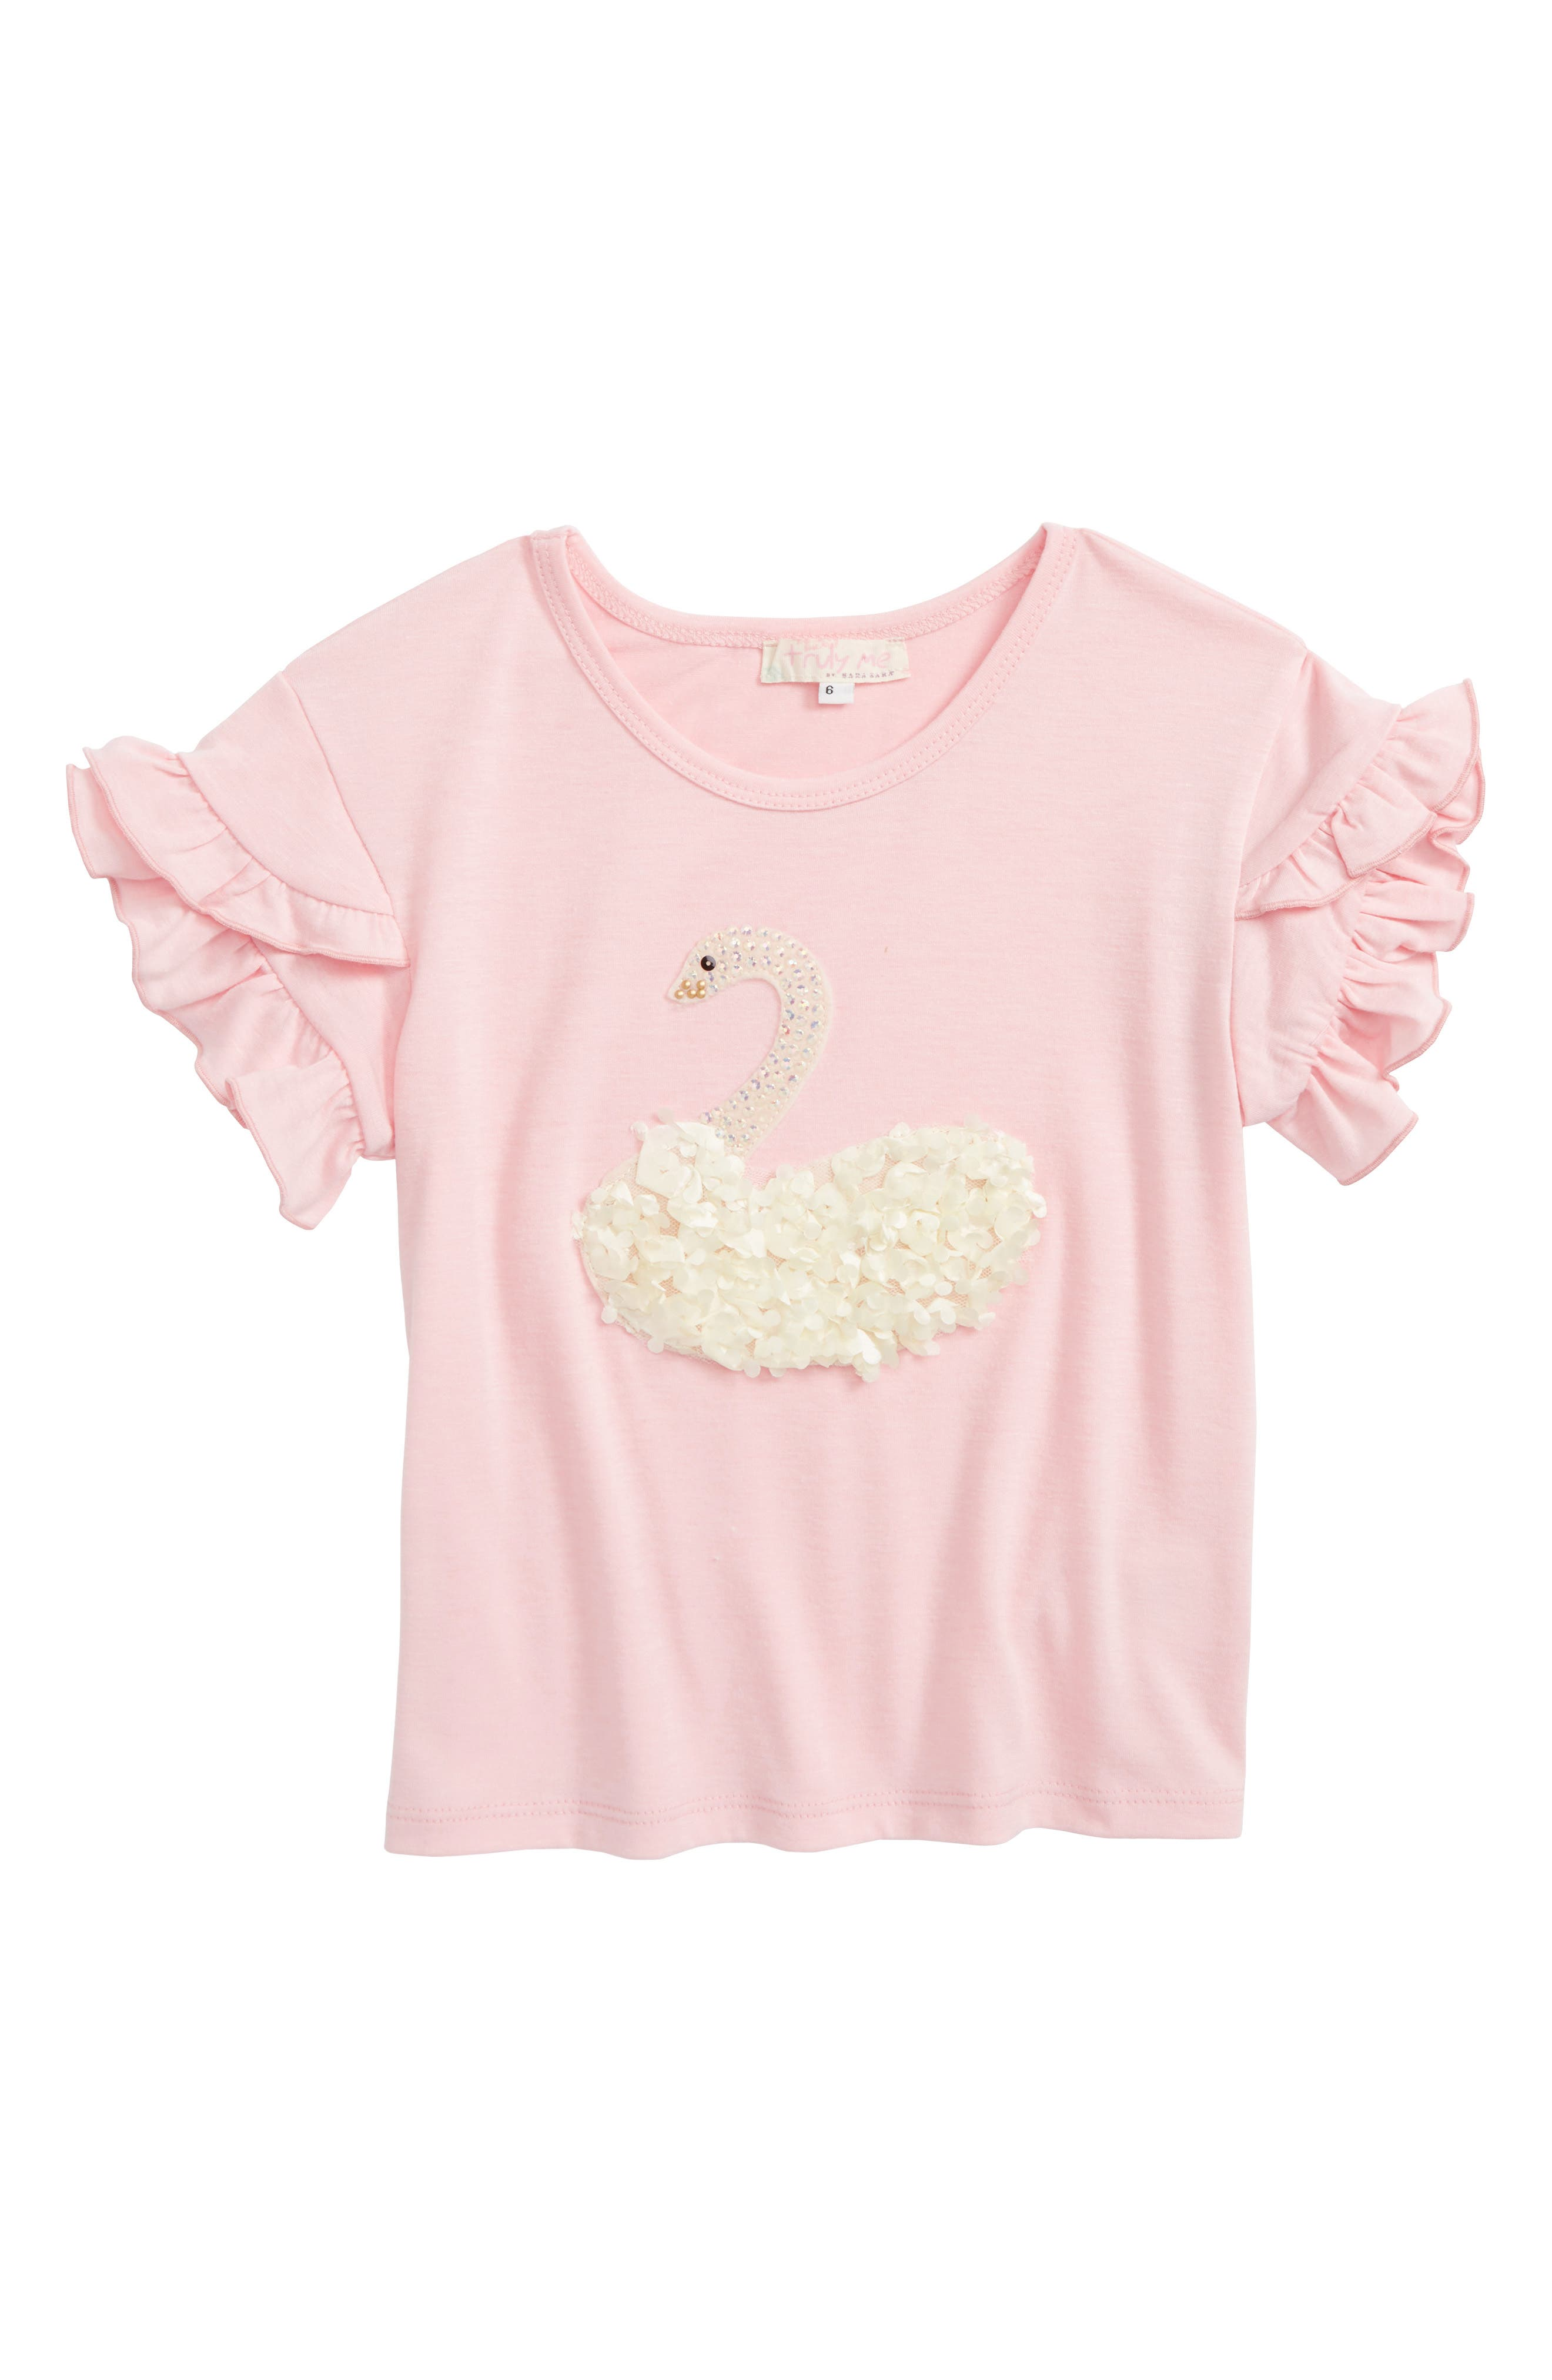 Main Image - Truly Me Swan Appliqué Tee (Toddler Girls & Little Girls)